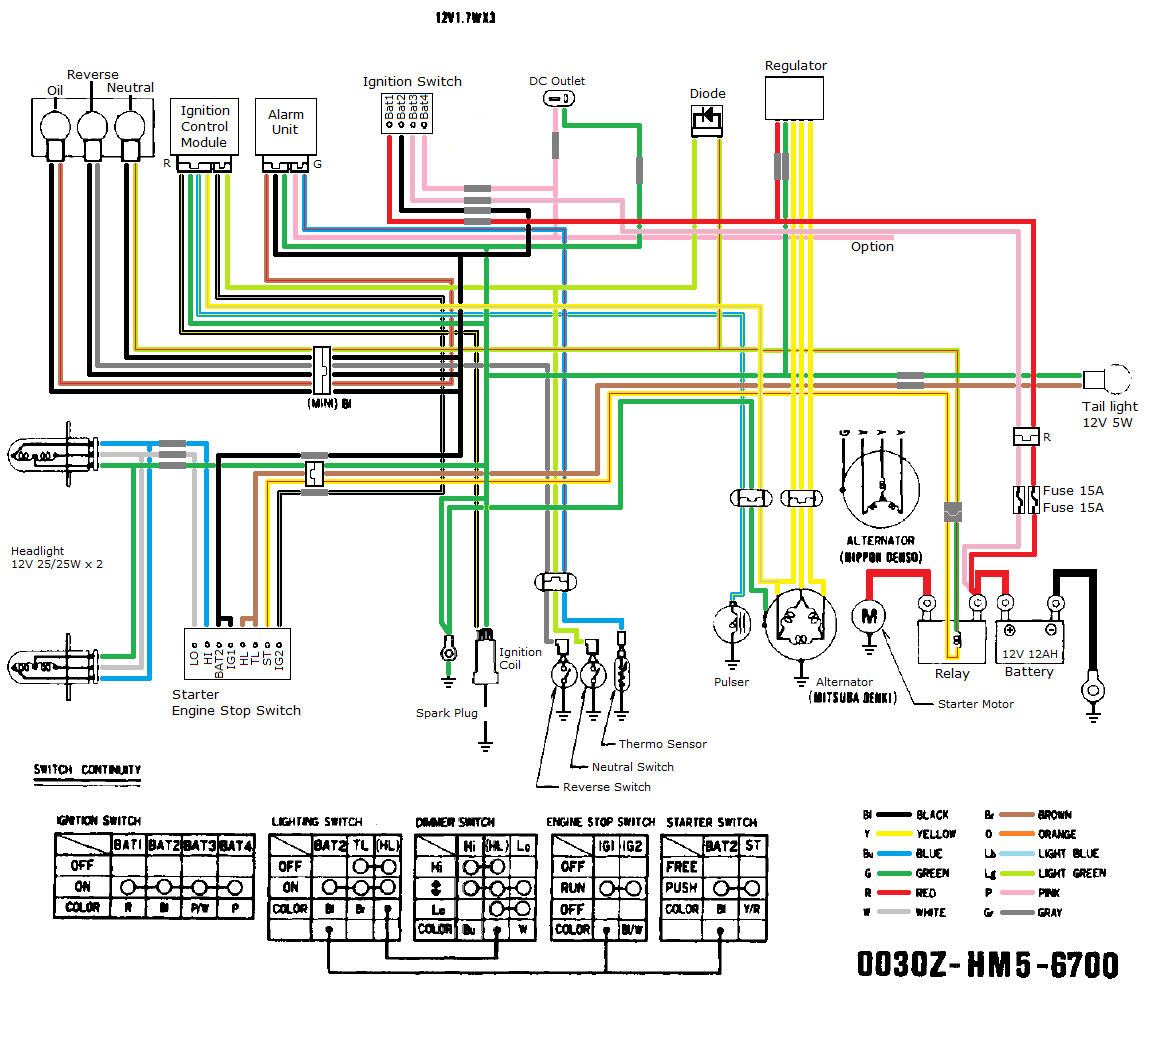 hight resolution of for chinese atv starter switch wiring diagram wiring diagram110 switch to schematic wiring diagram wiring diagram